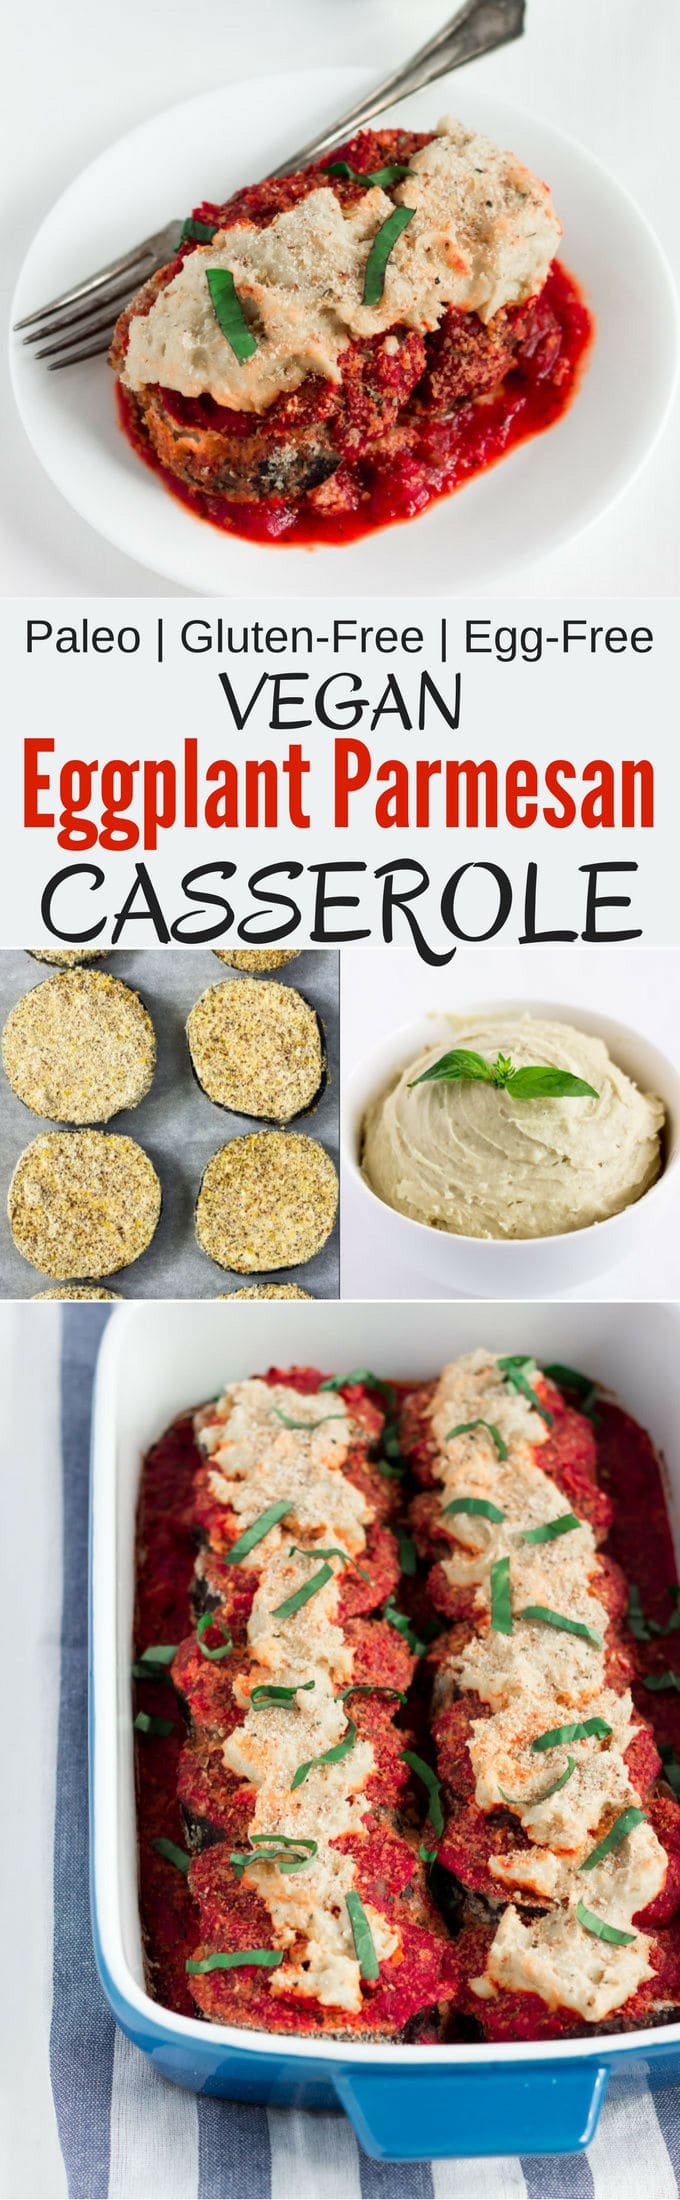 Seriously, where's the egg? This Vegan Fried Eggplant Casserole (AKA eggplant parmesan) is nothing like you've seen before. Making this dish Gluten-free, Egg-Free, Dairy-Free, Vegan, Flourless and Paleo was truly a feat... But I made it! In the traditional recipe, the eggplant is usually coated with egg then panko or Italian breadcrumbs. Not here. This recipe is 100% healthy, made with real unprocessed food and so, so good...! | www.onecleverchef.com